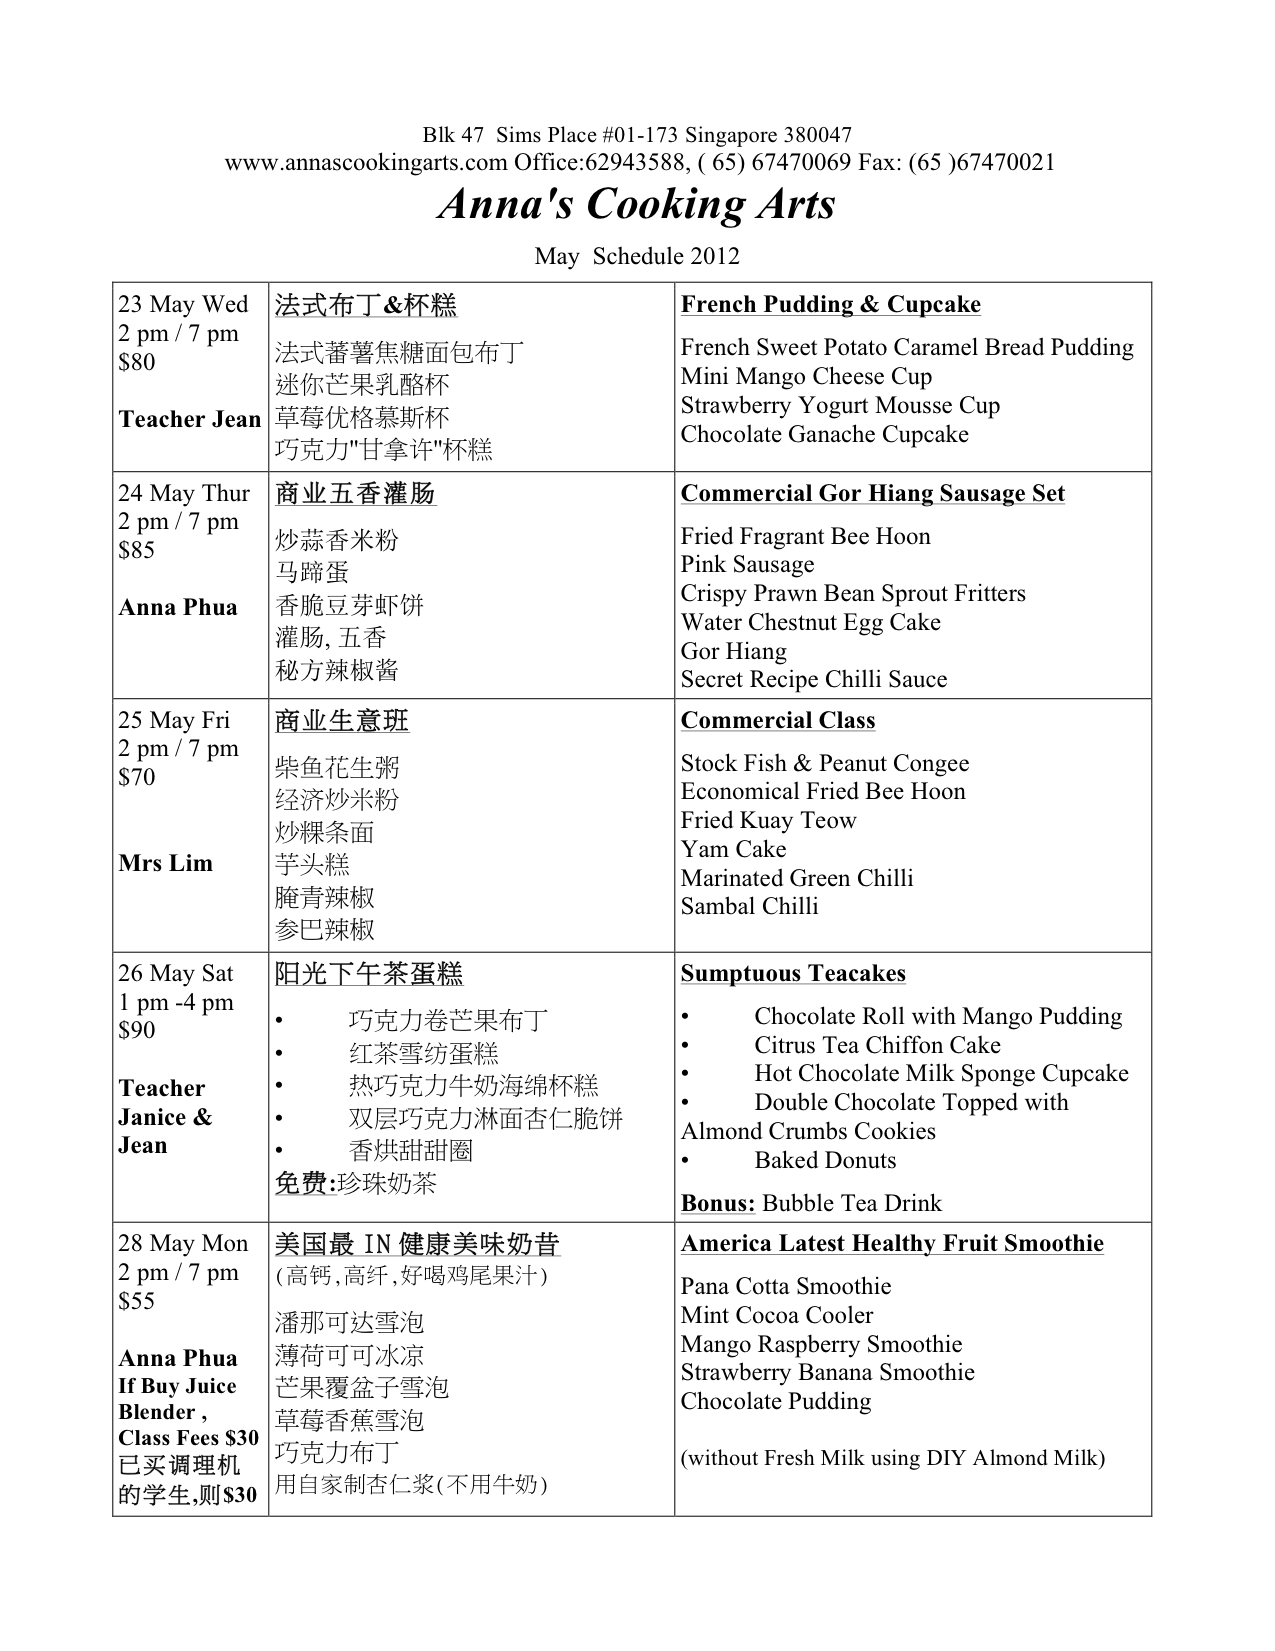 Time Table - May  2012 3